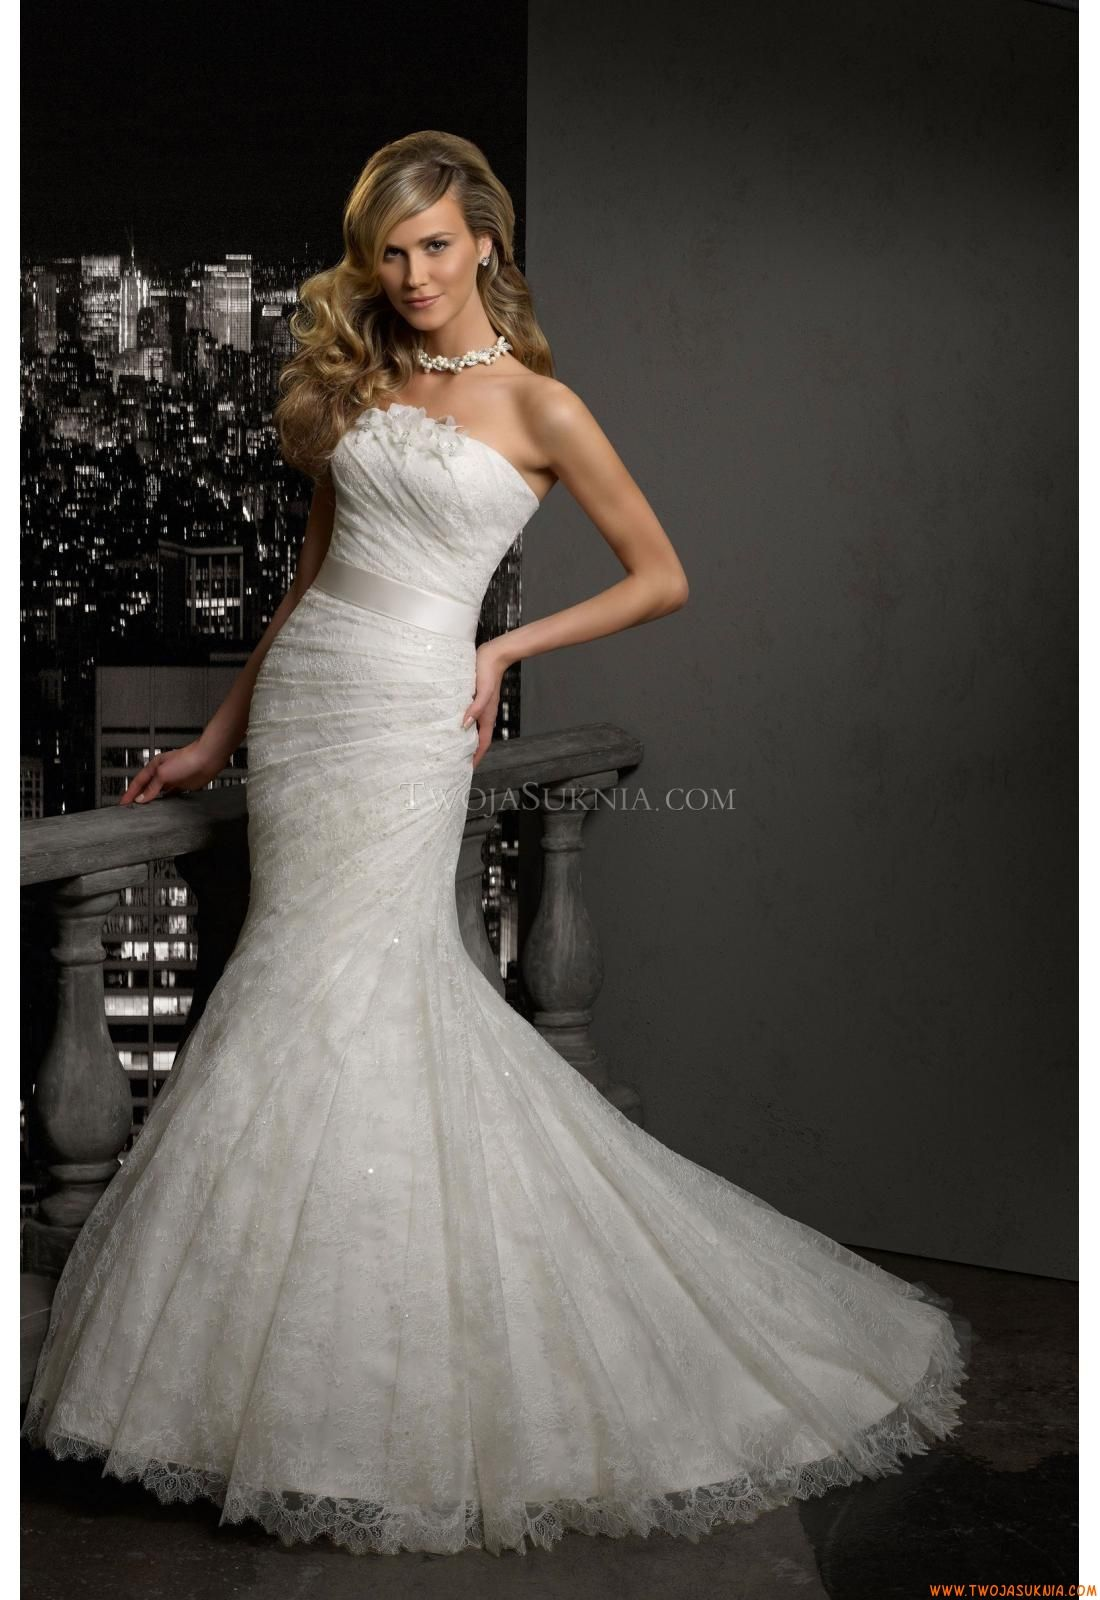 Wedding dresses mermaid style lace  Strapless Mermaid Style New Arrival Wedding Dresses  Mermaid Style